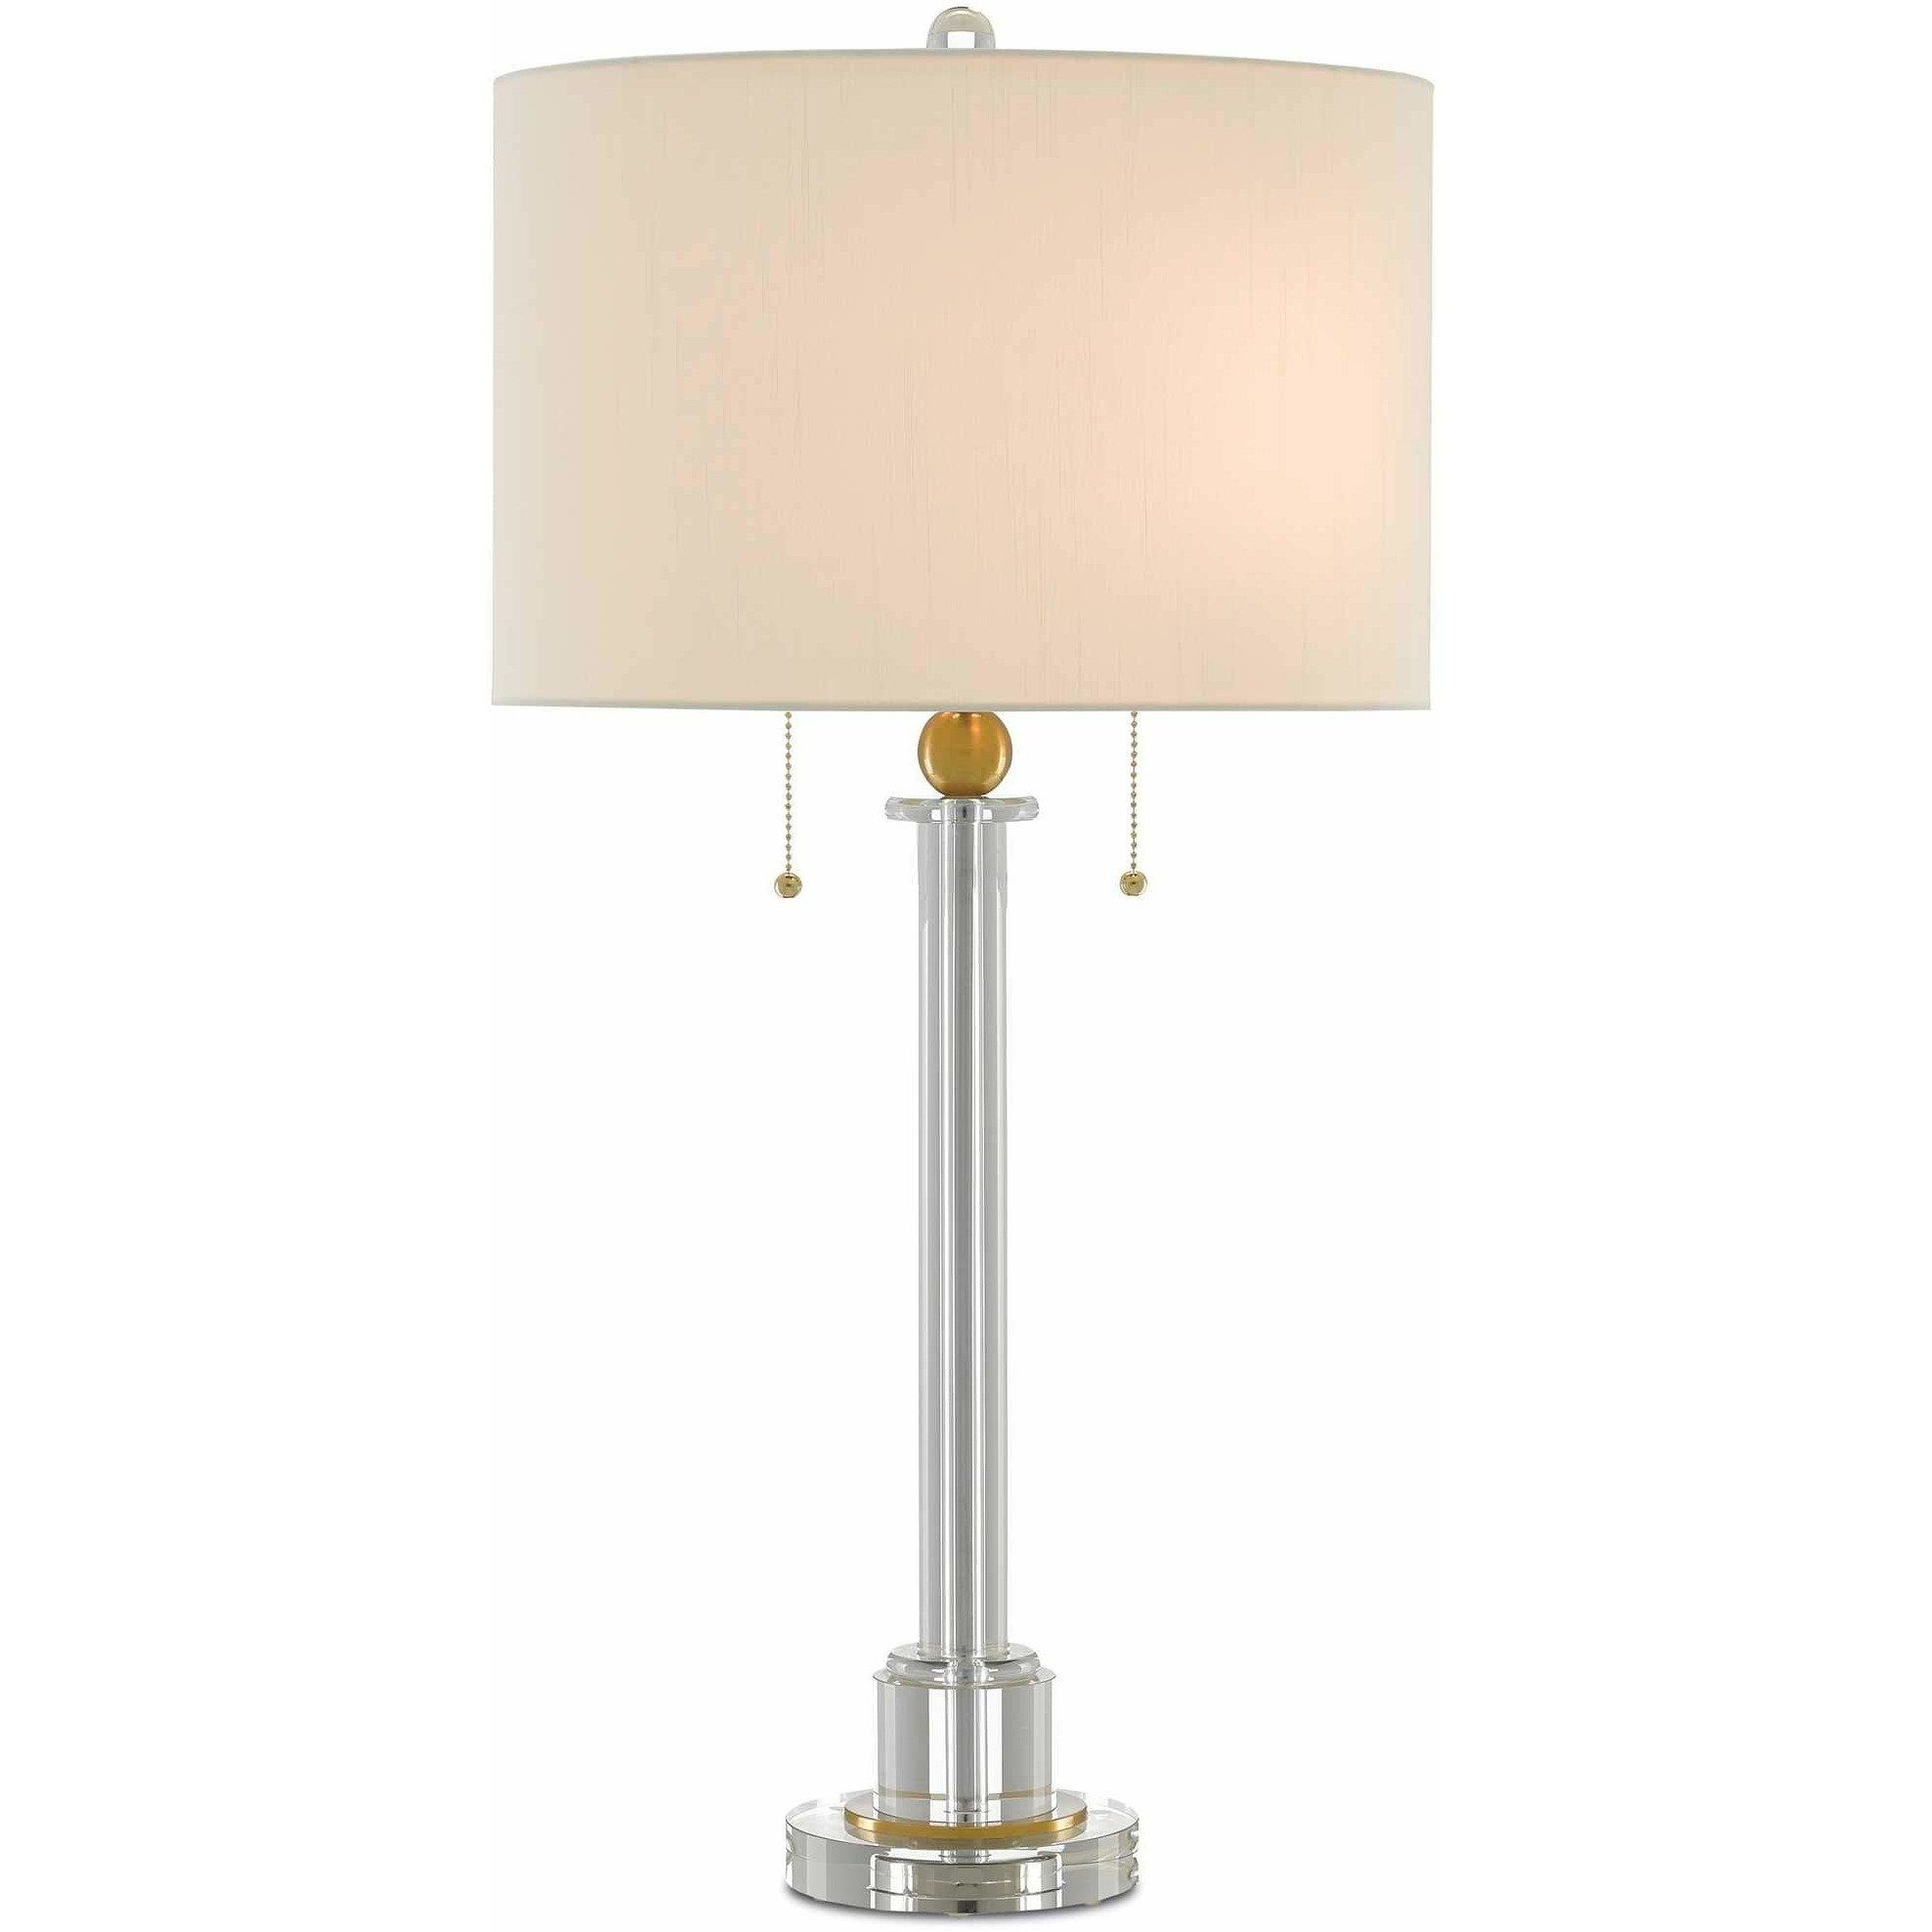 Currey and Company Larsa Table Lamp 6000-0211 - LOVECUP